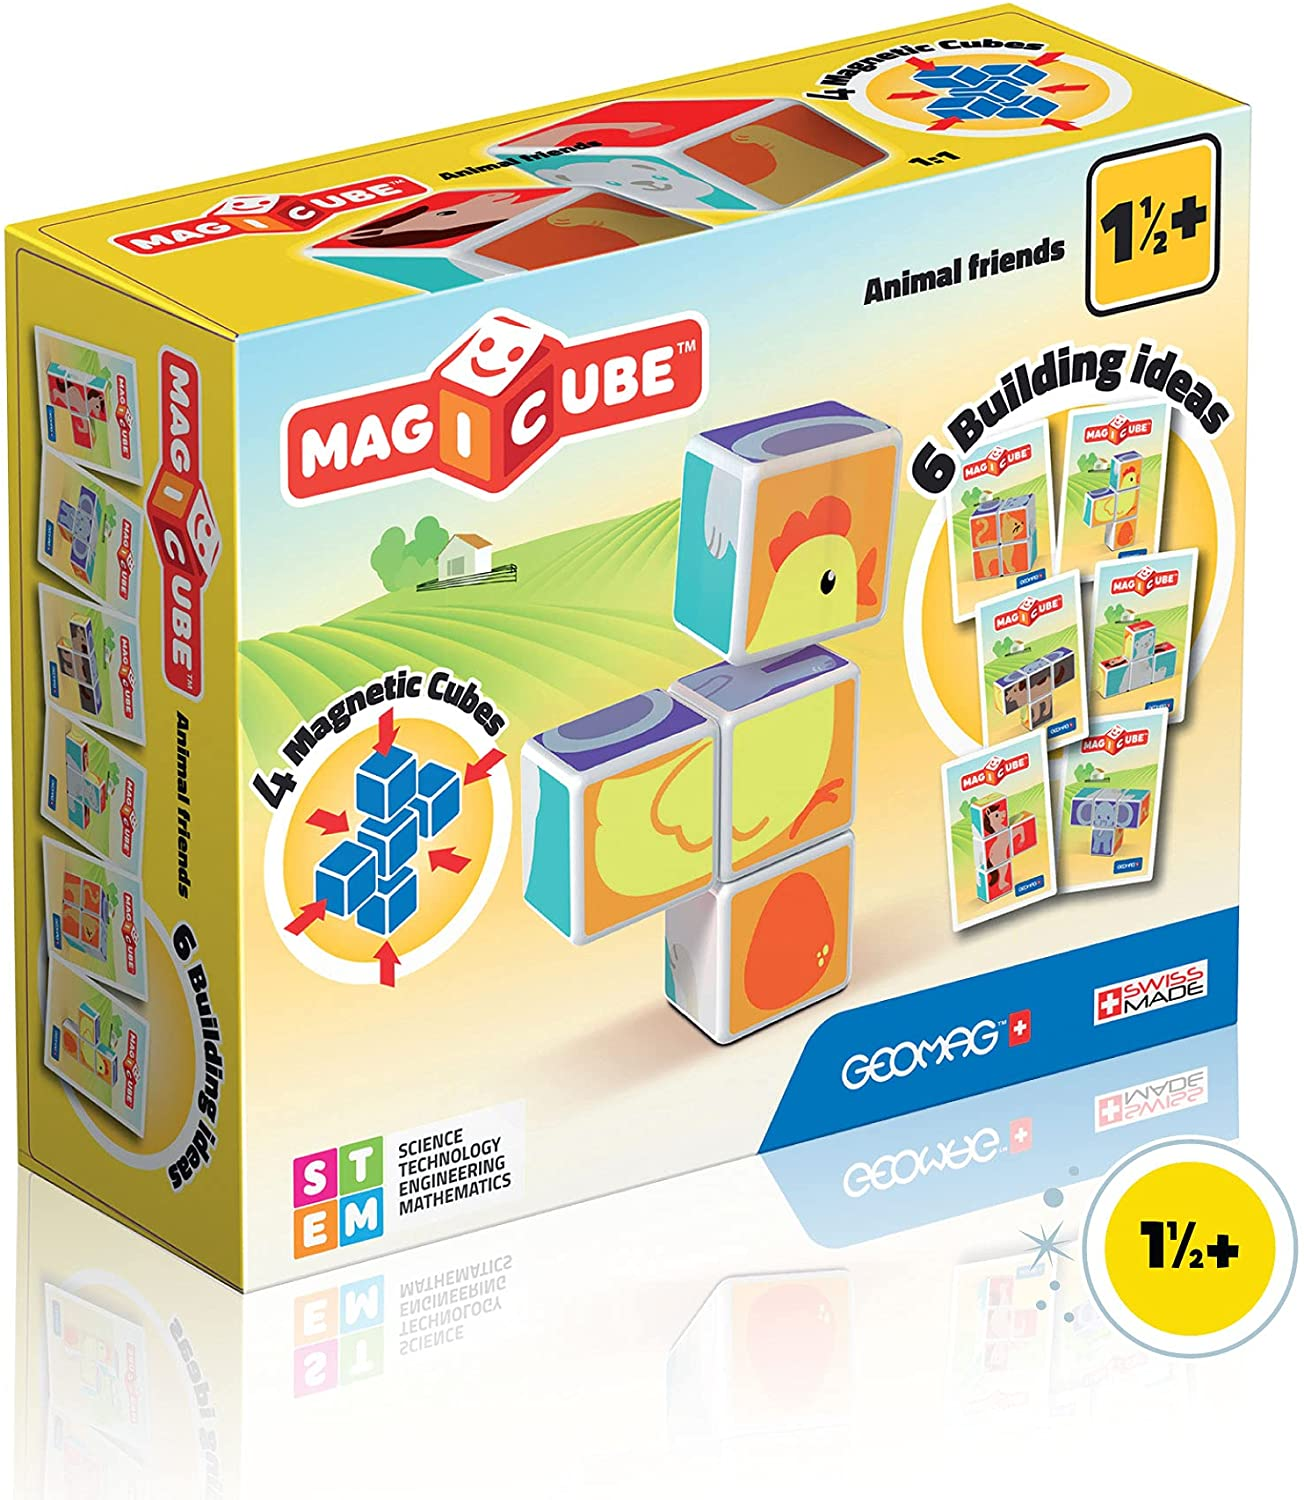 STEM Learning Swiss-Made Geomag Magnetic Toys Magicube Math Building Fun Magnet Cubes and Number Clips Set Magnets for Kids Ages 3+